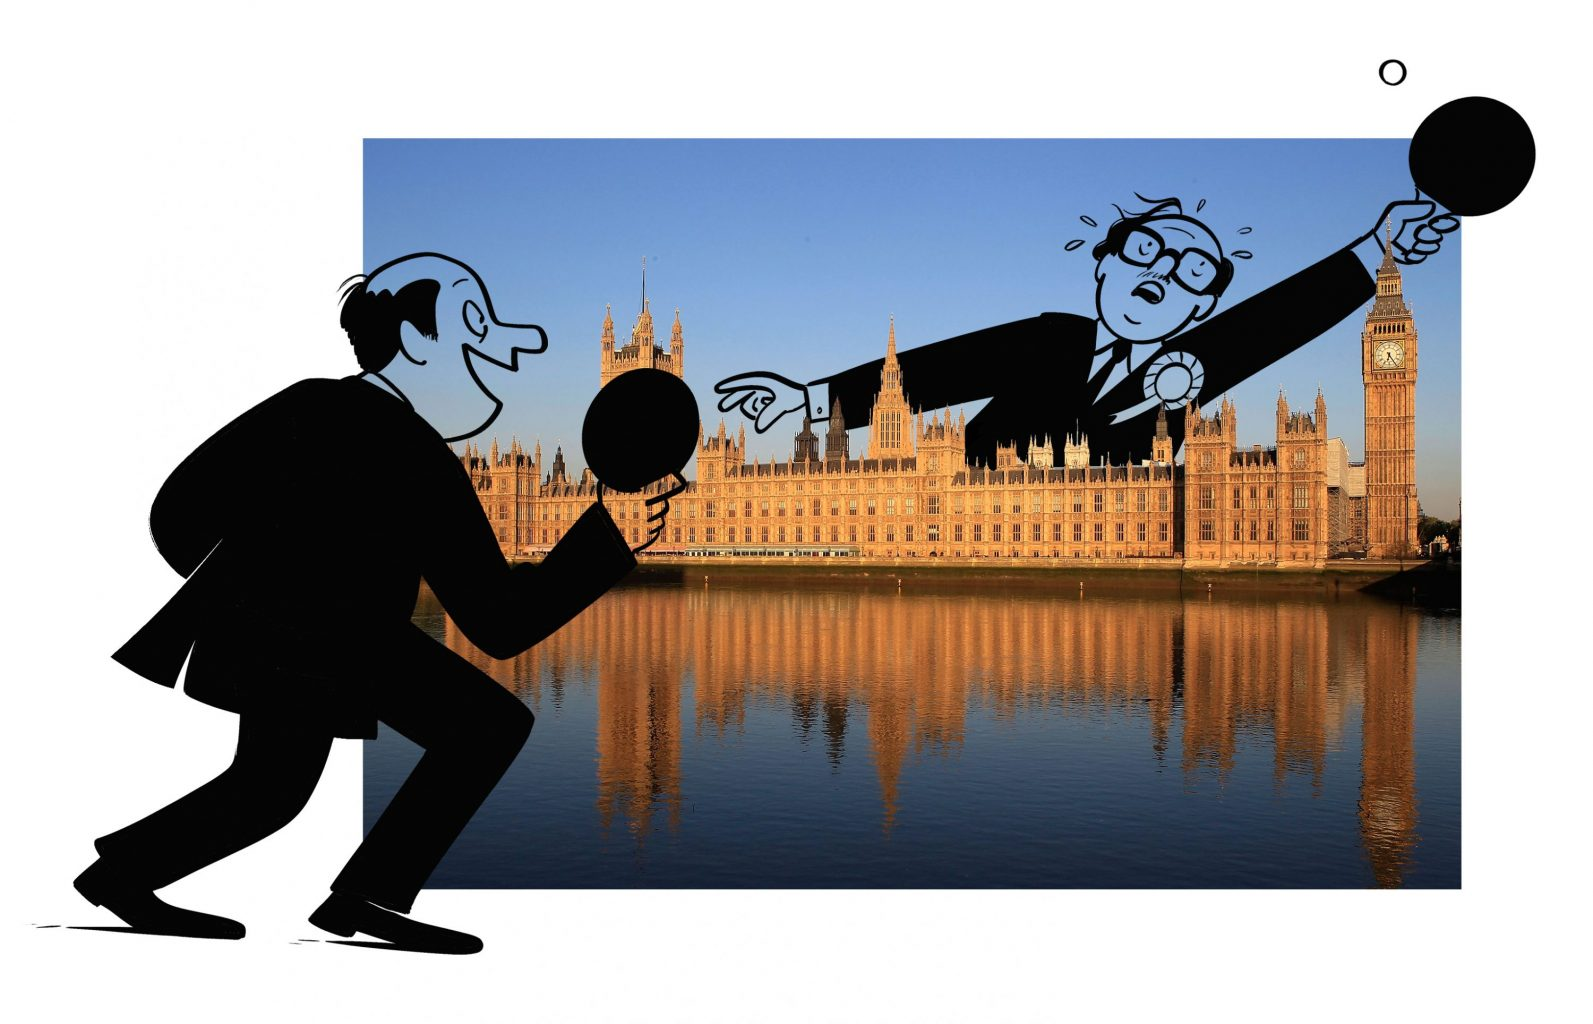 MPs playing ping-pong over Parliament